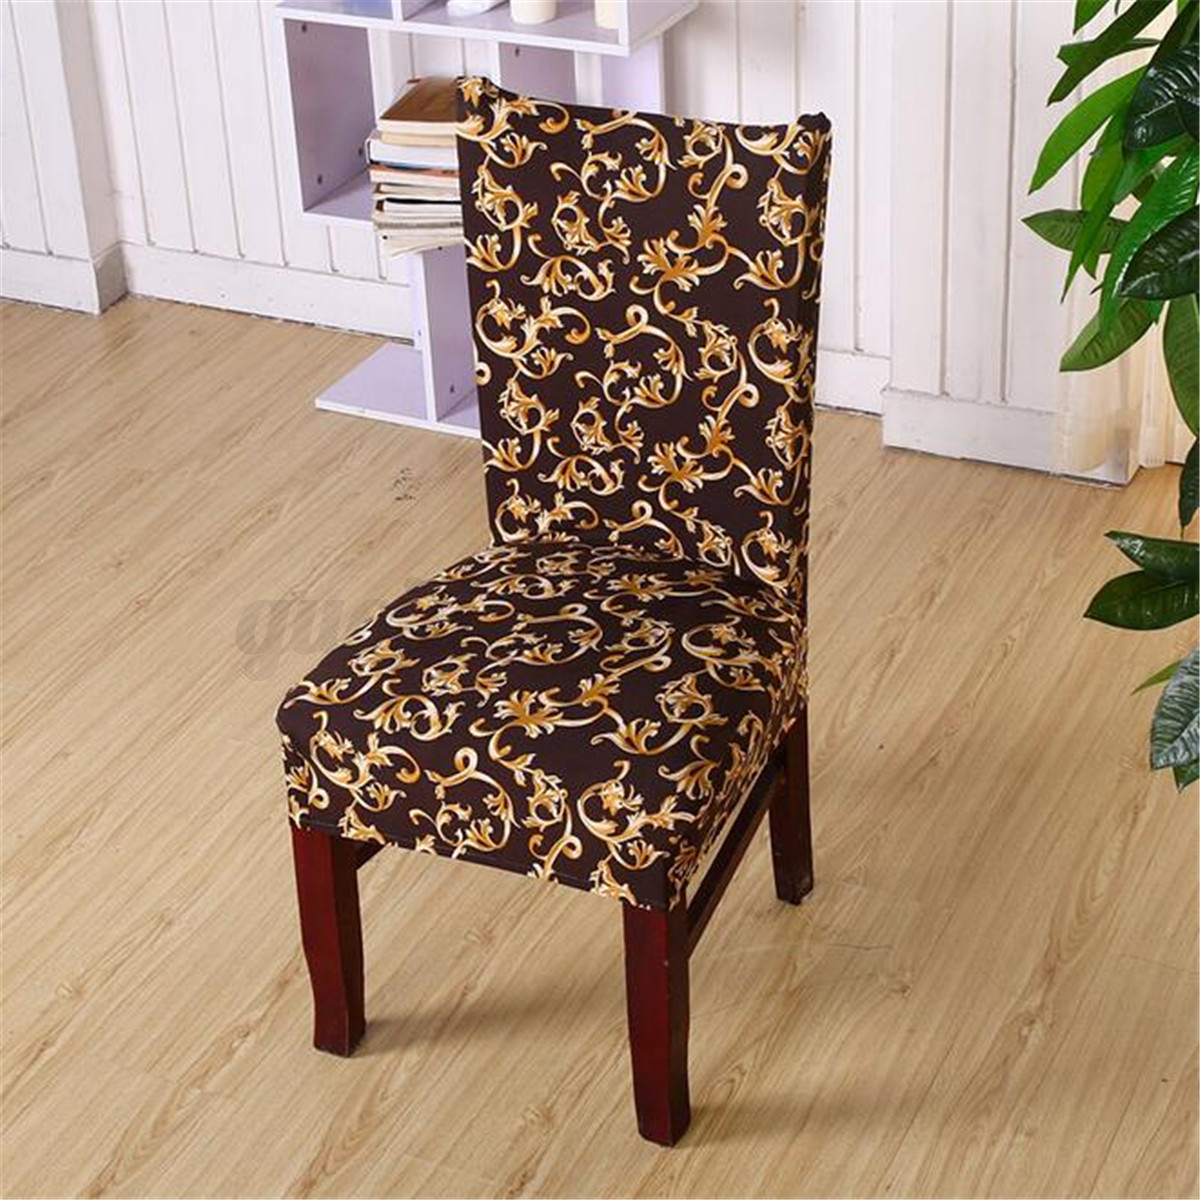 dunelm stretch chair covers swivel cad block spandex cover seat polyester washable